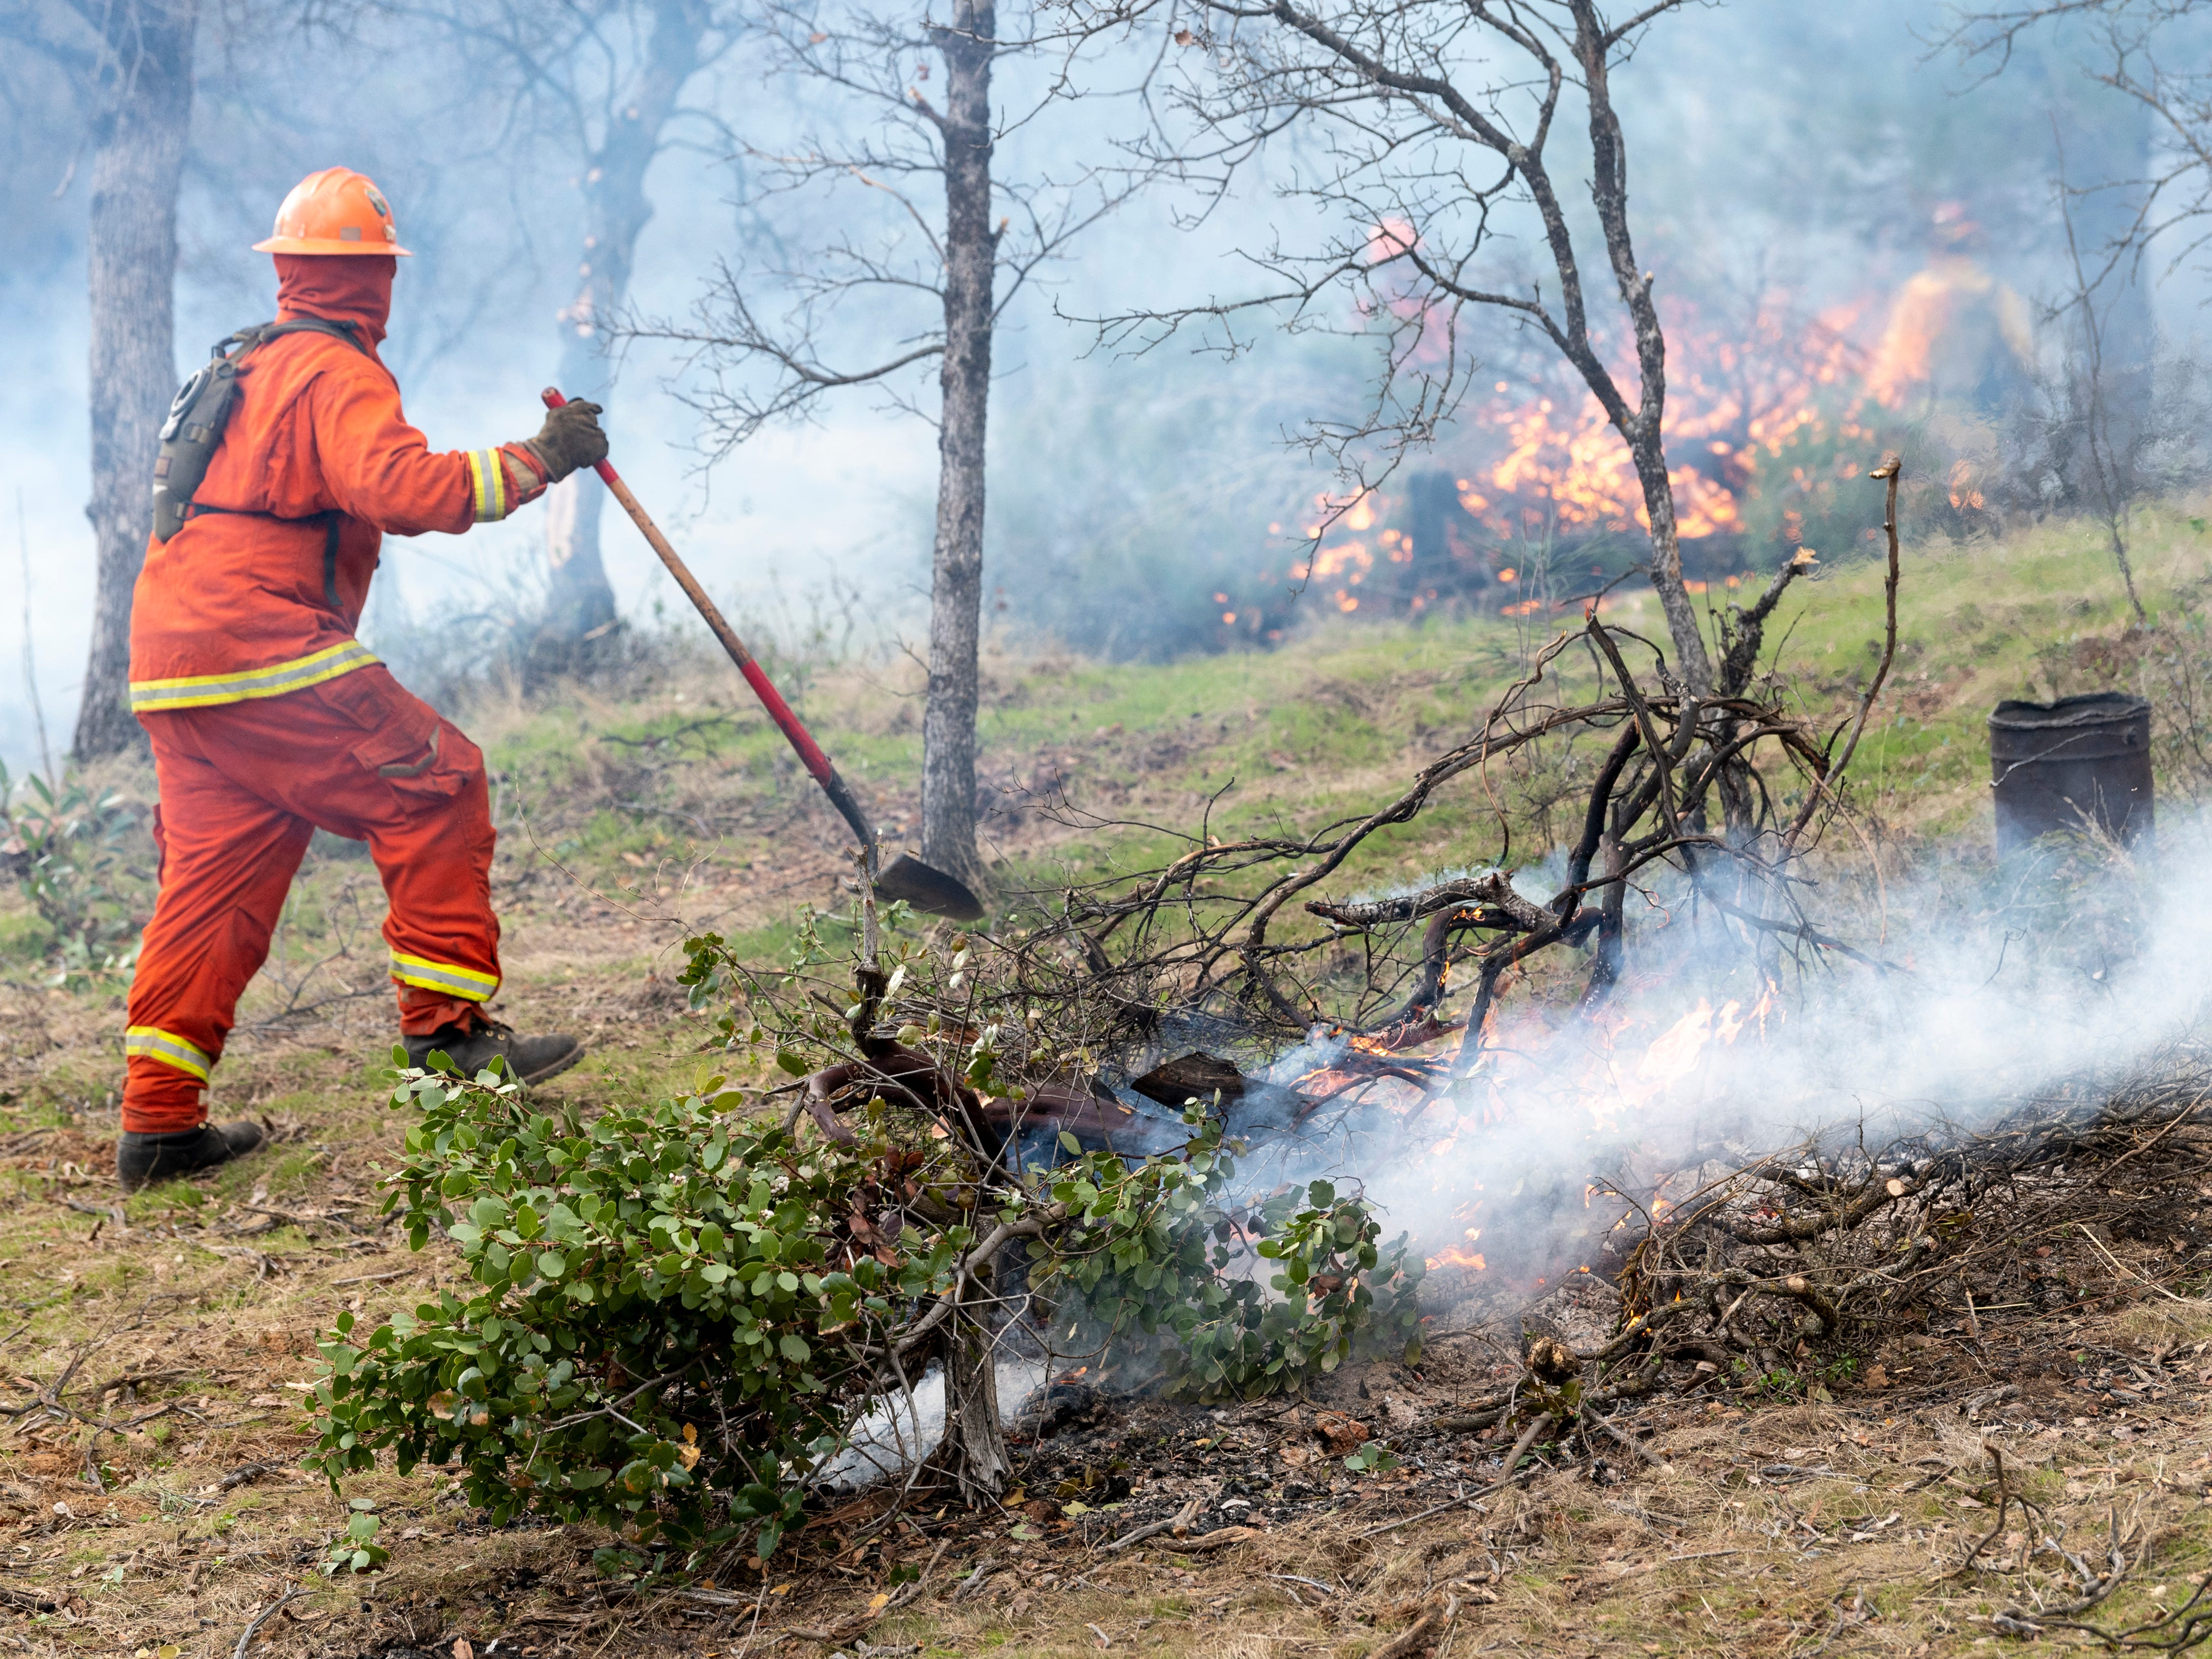 Sugar Pine Conservation Camp inmates burn brush piles to reduce the fire hazard in a greenbelt located in between residential areas in west Redding on Wednesday, Feb. 6, 2019.